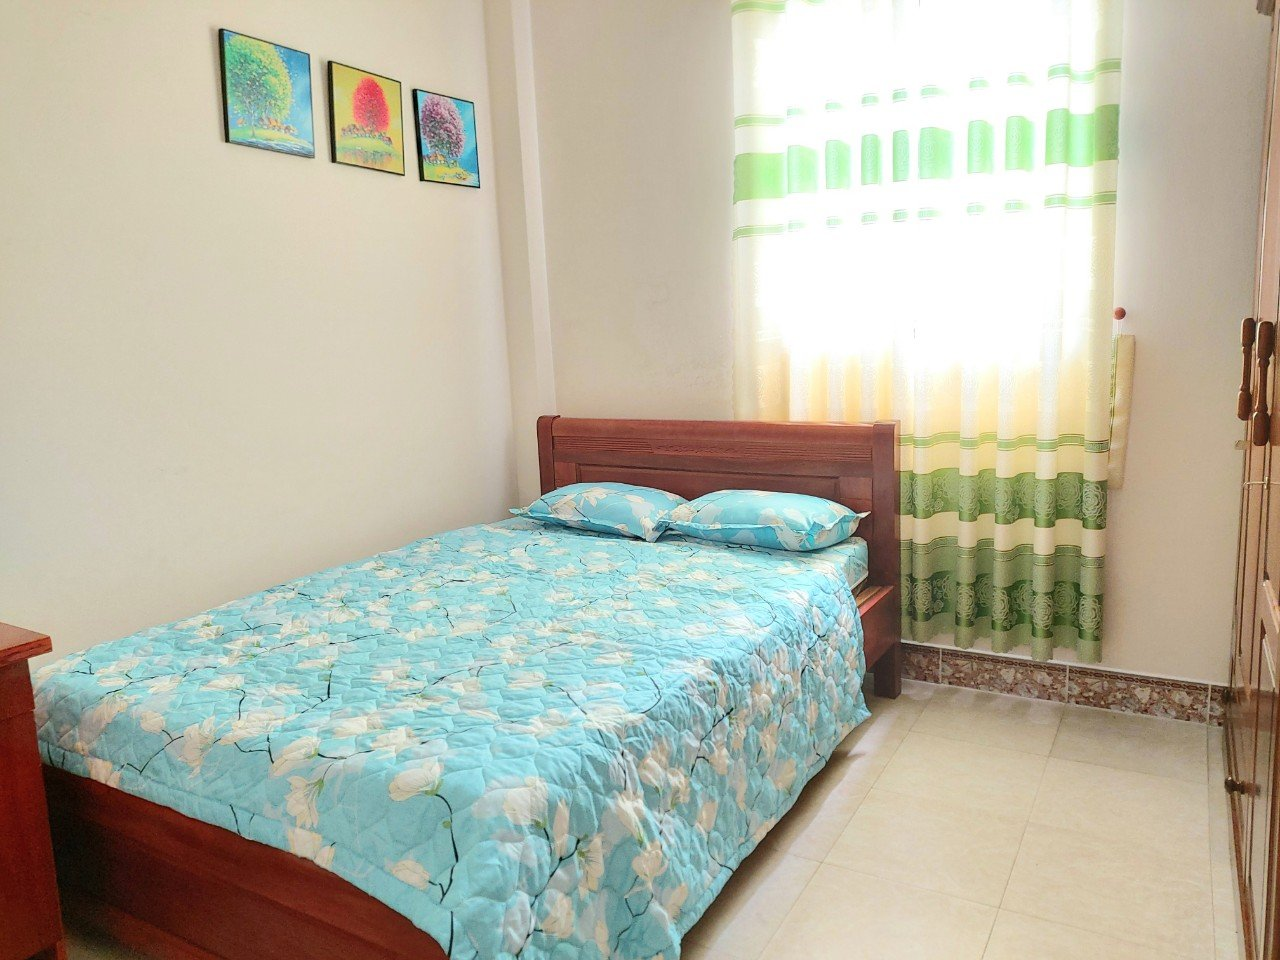 3 Bedrooms House For Rent in My An Da Nang